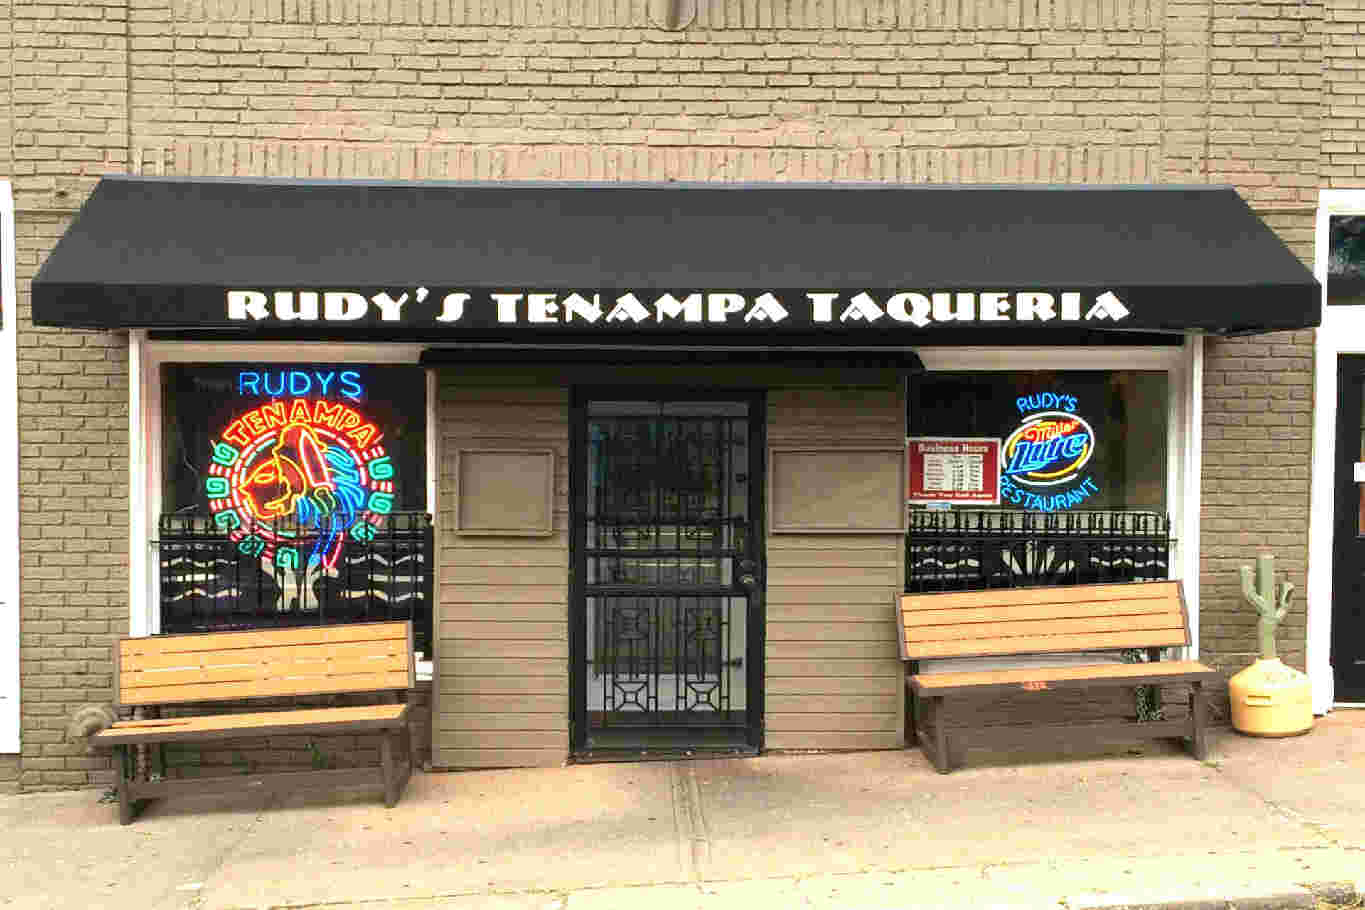 Rudy's Tenampa Taqueria: A Family Restaurant Success Story